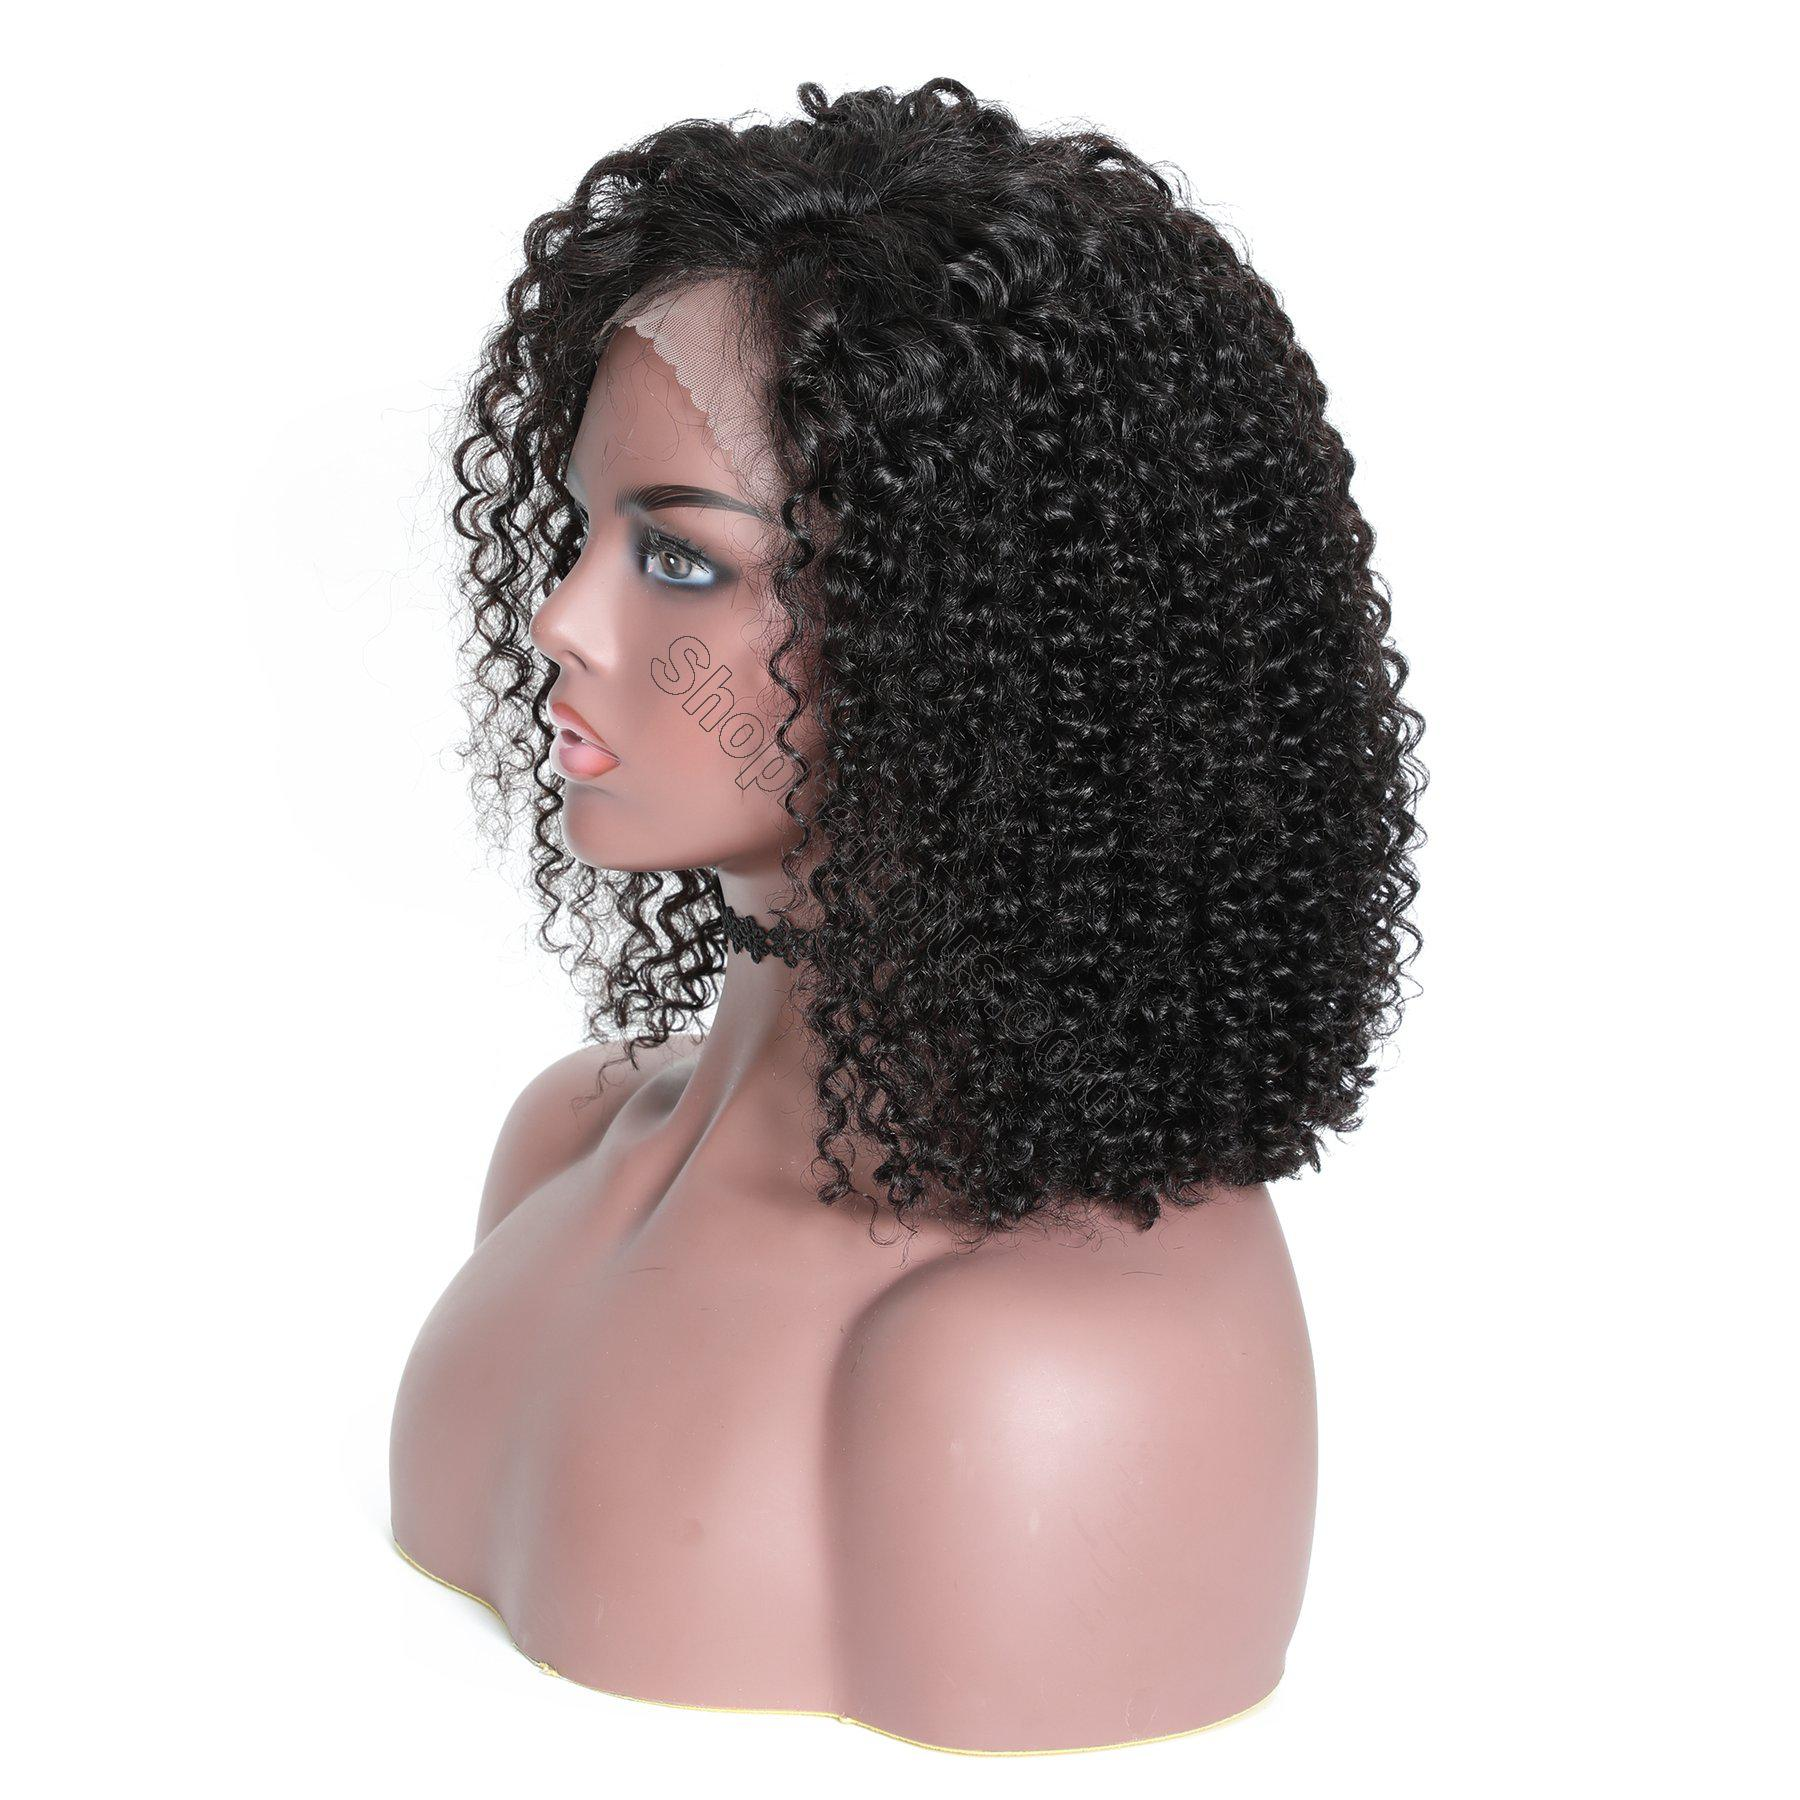 9A 13*4 Short Bob Curly Hair Lace Front Wig On Deals, 150%/180% Densit 11